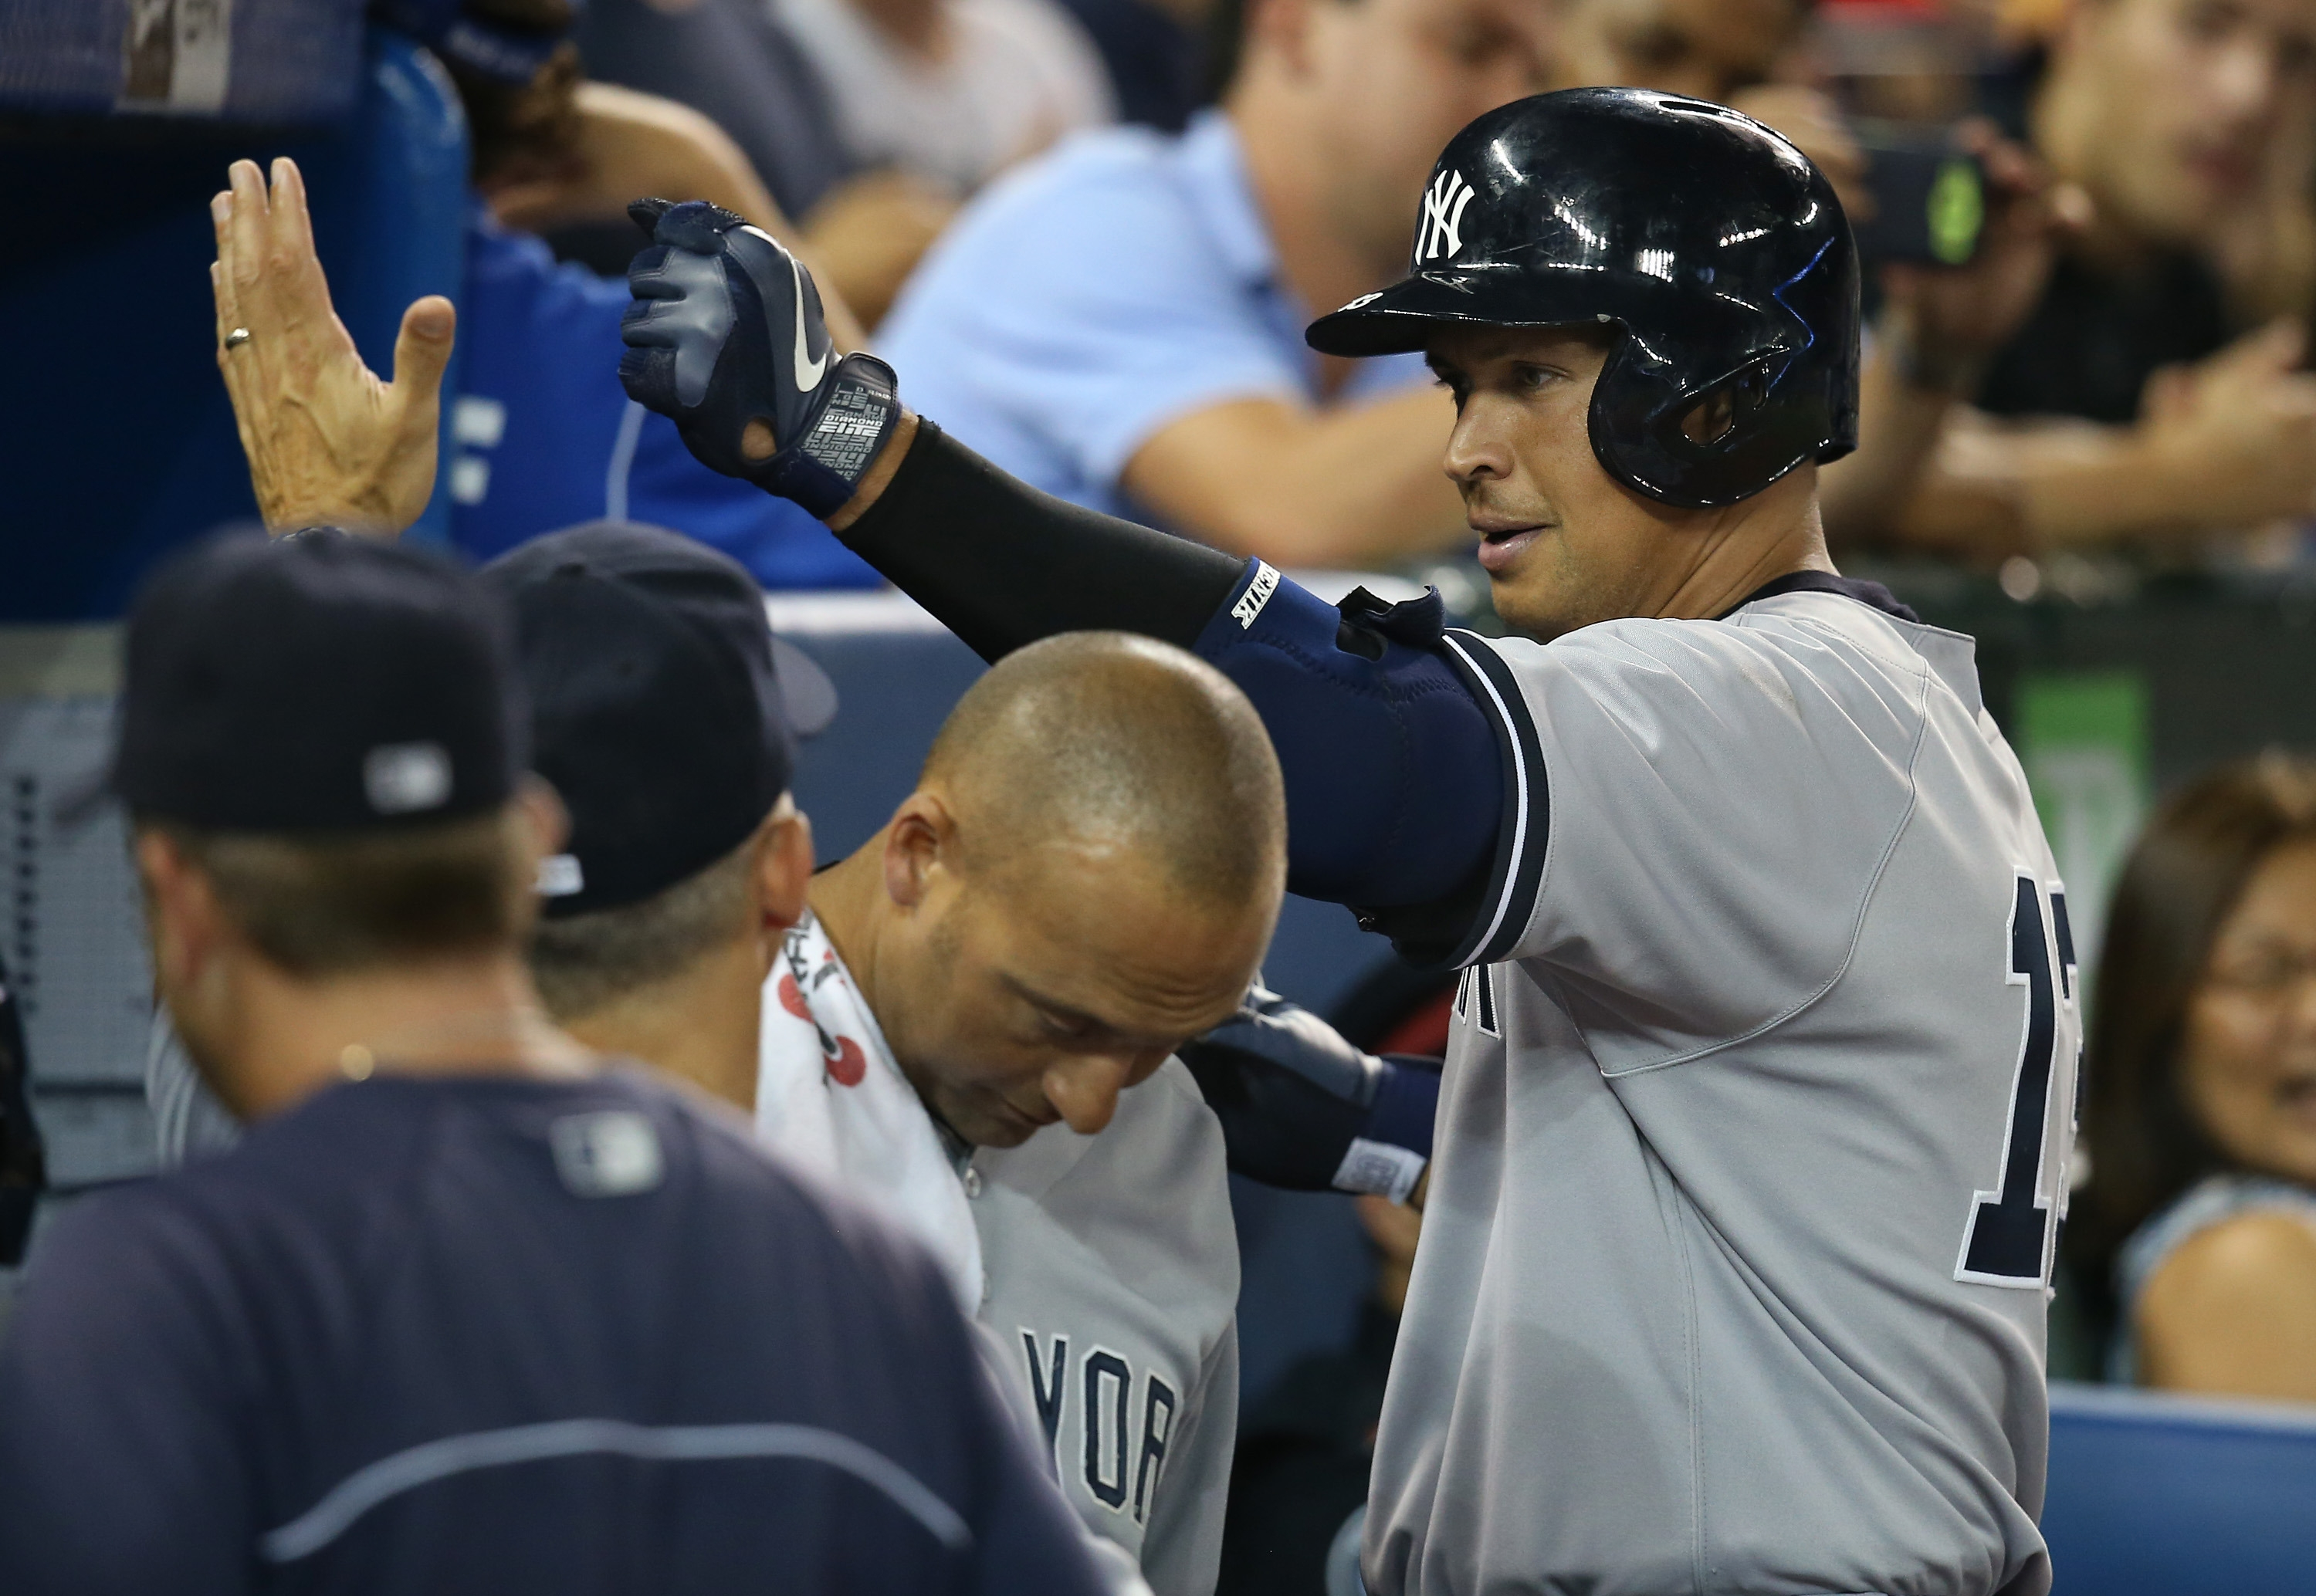 Alex Rodriguez of the Yankees is congratulated by Derek Jeter and teammates after a recent homer.